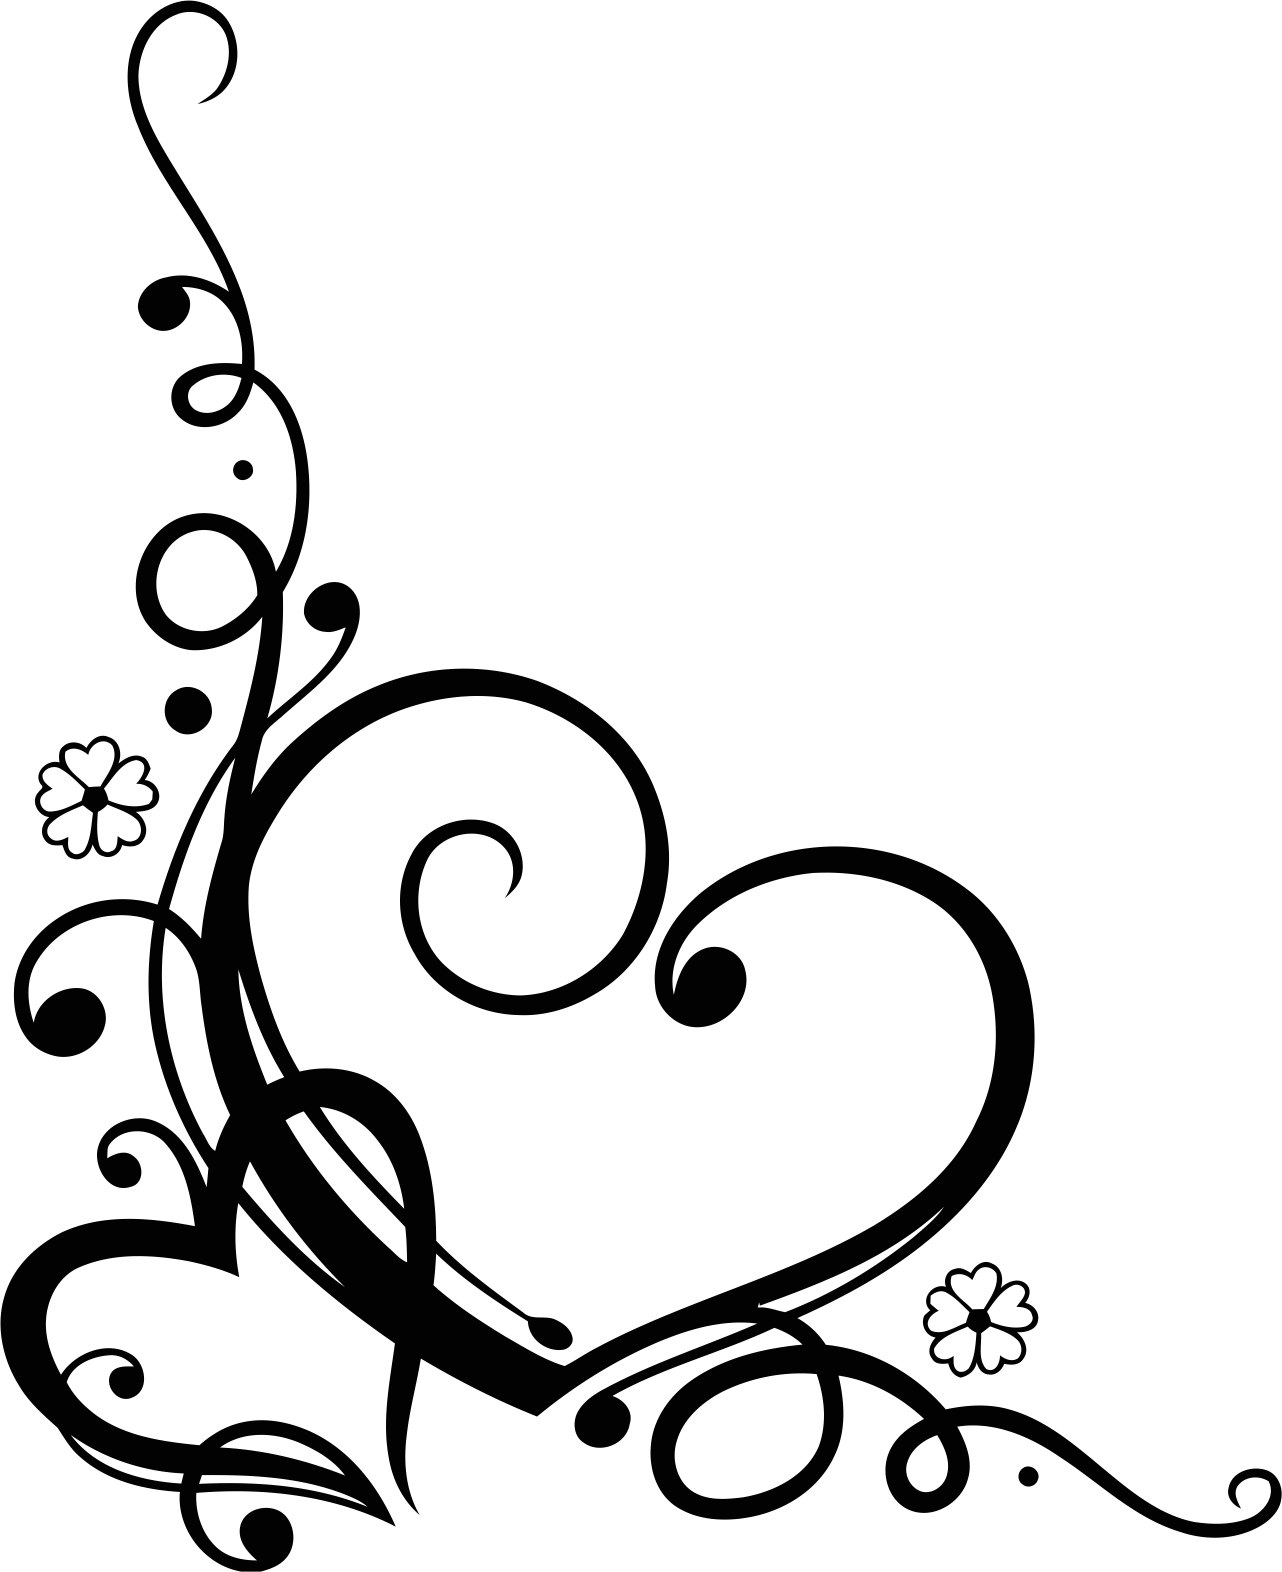 1282x1572 Love Heart Floral Swirl Vector Free Vector Download